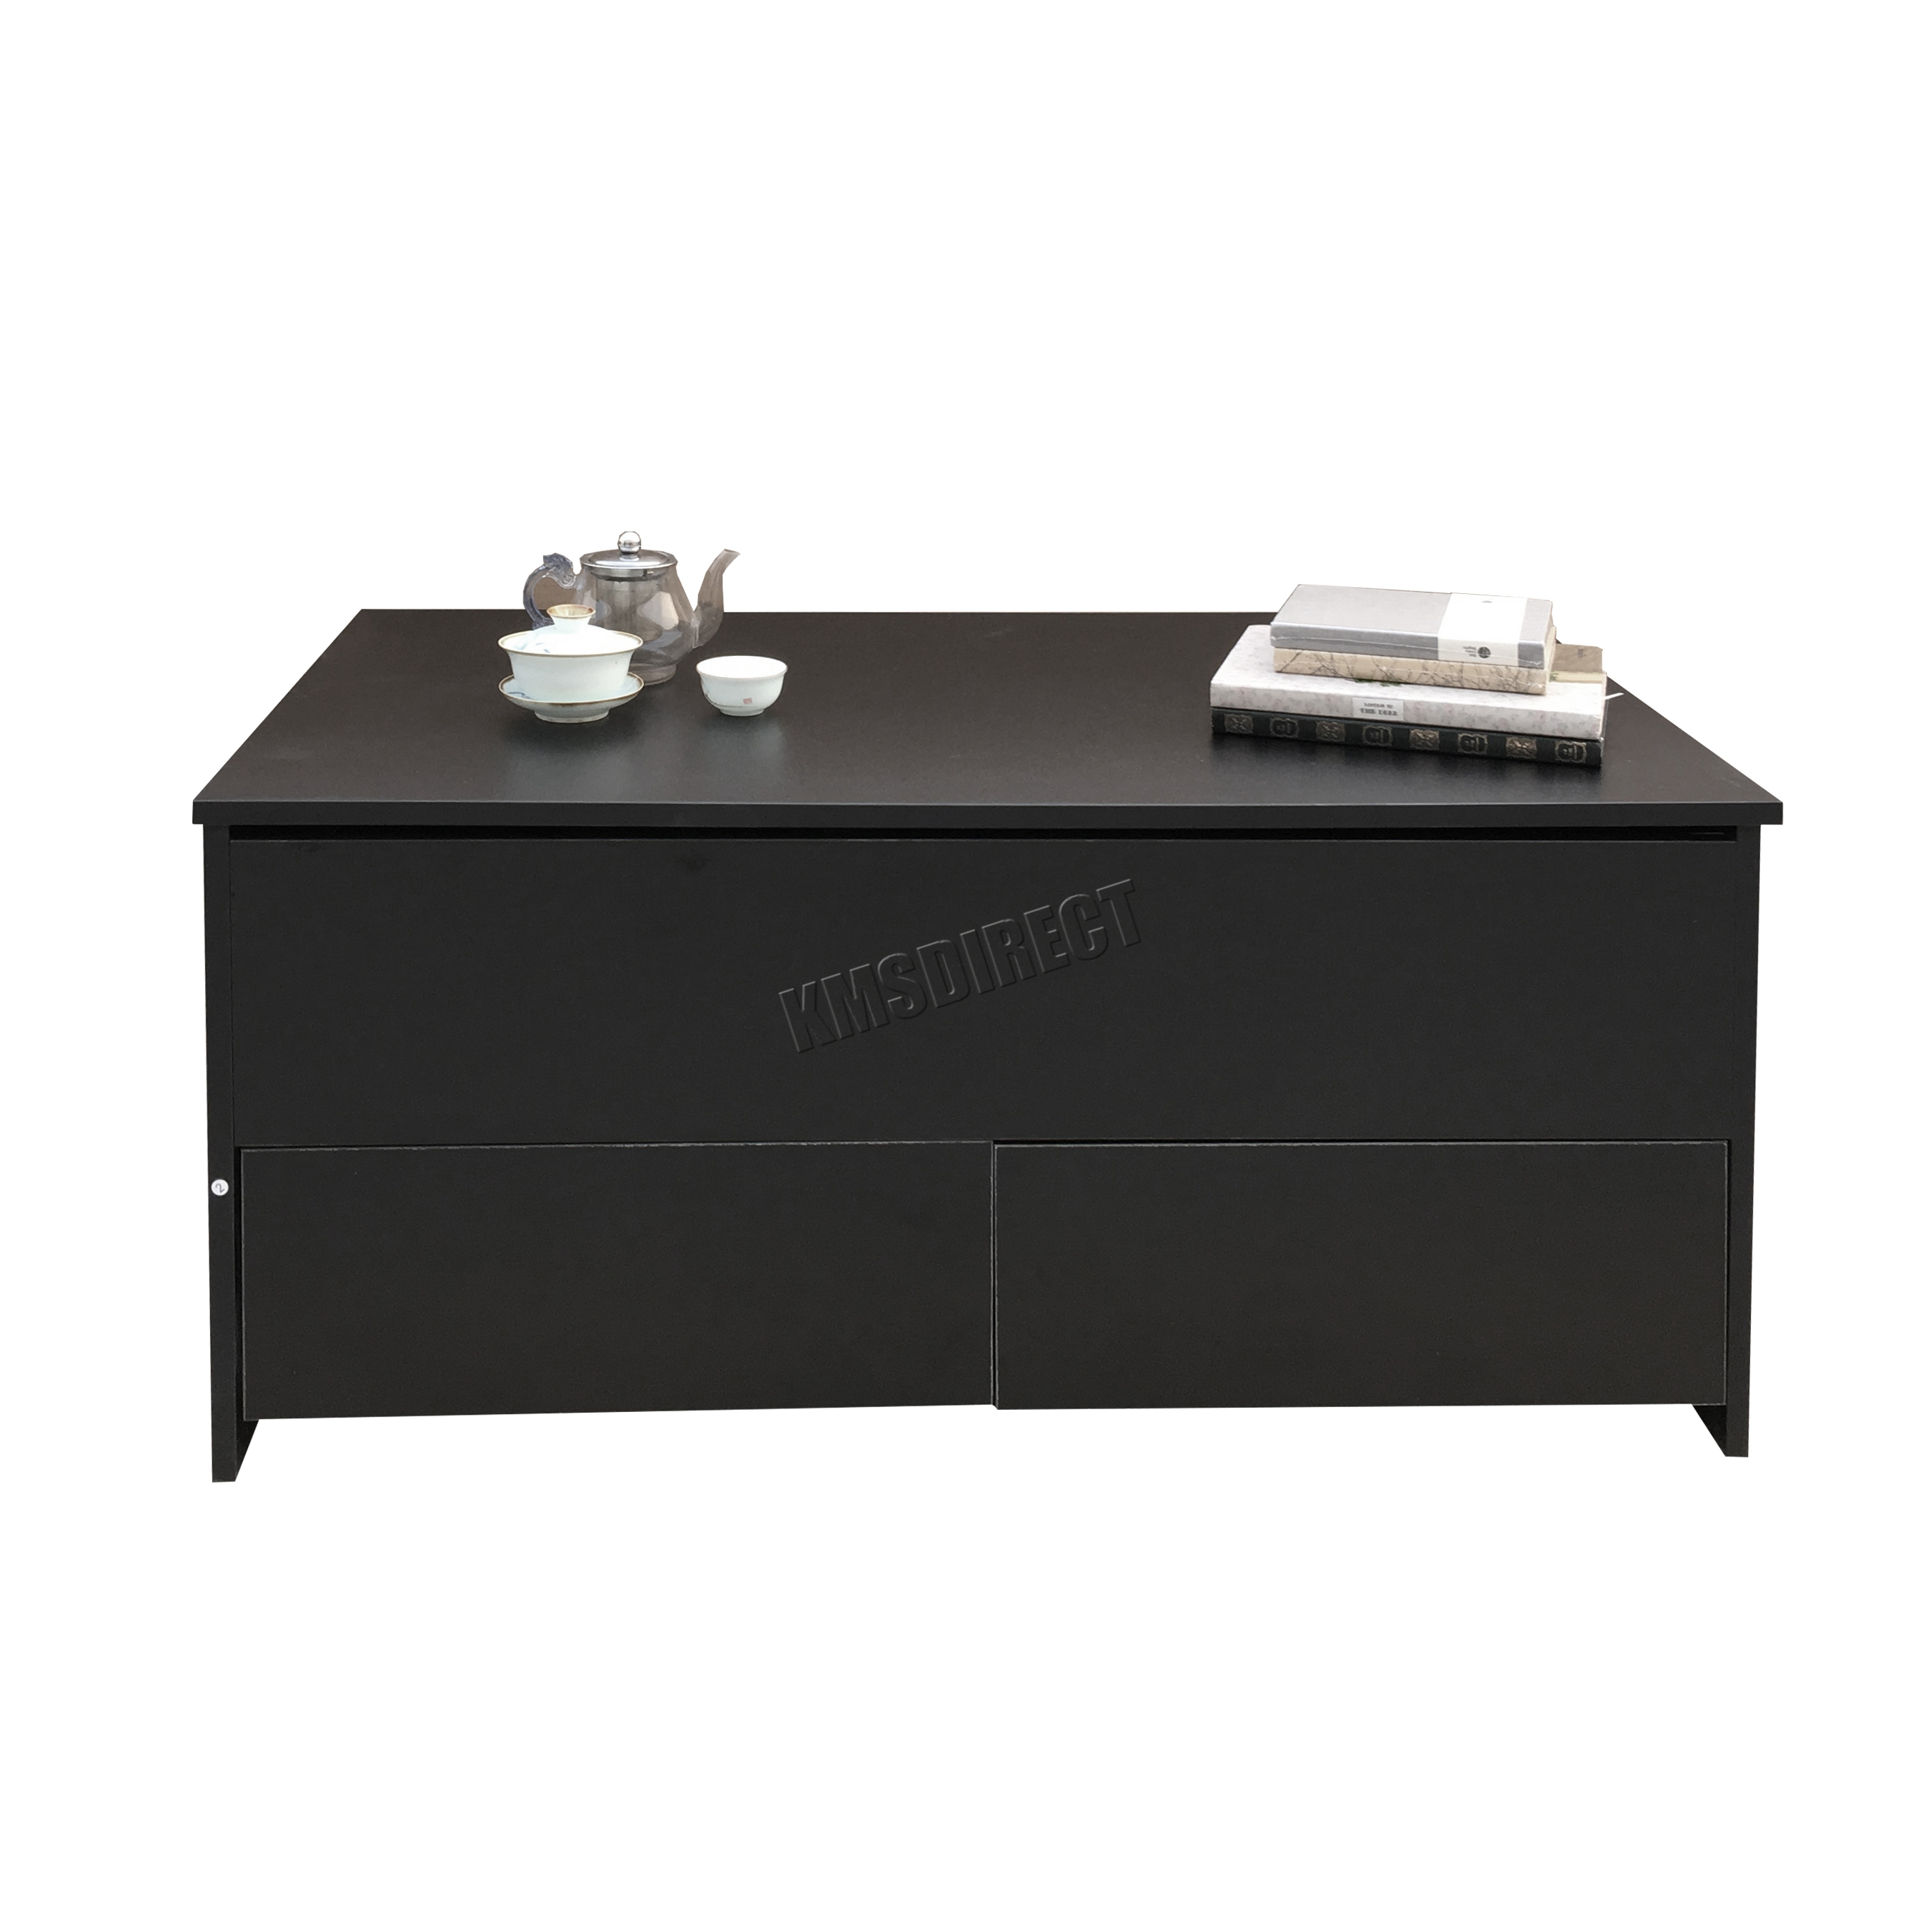 FoxHunter Slide Top Coffee Table With Storage And Drawer